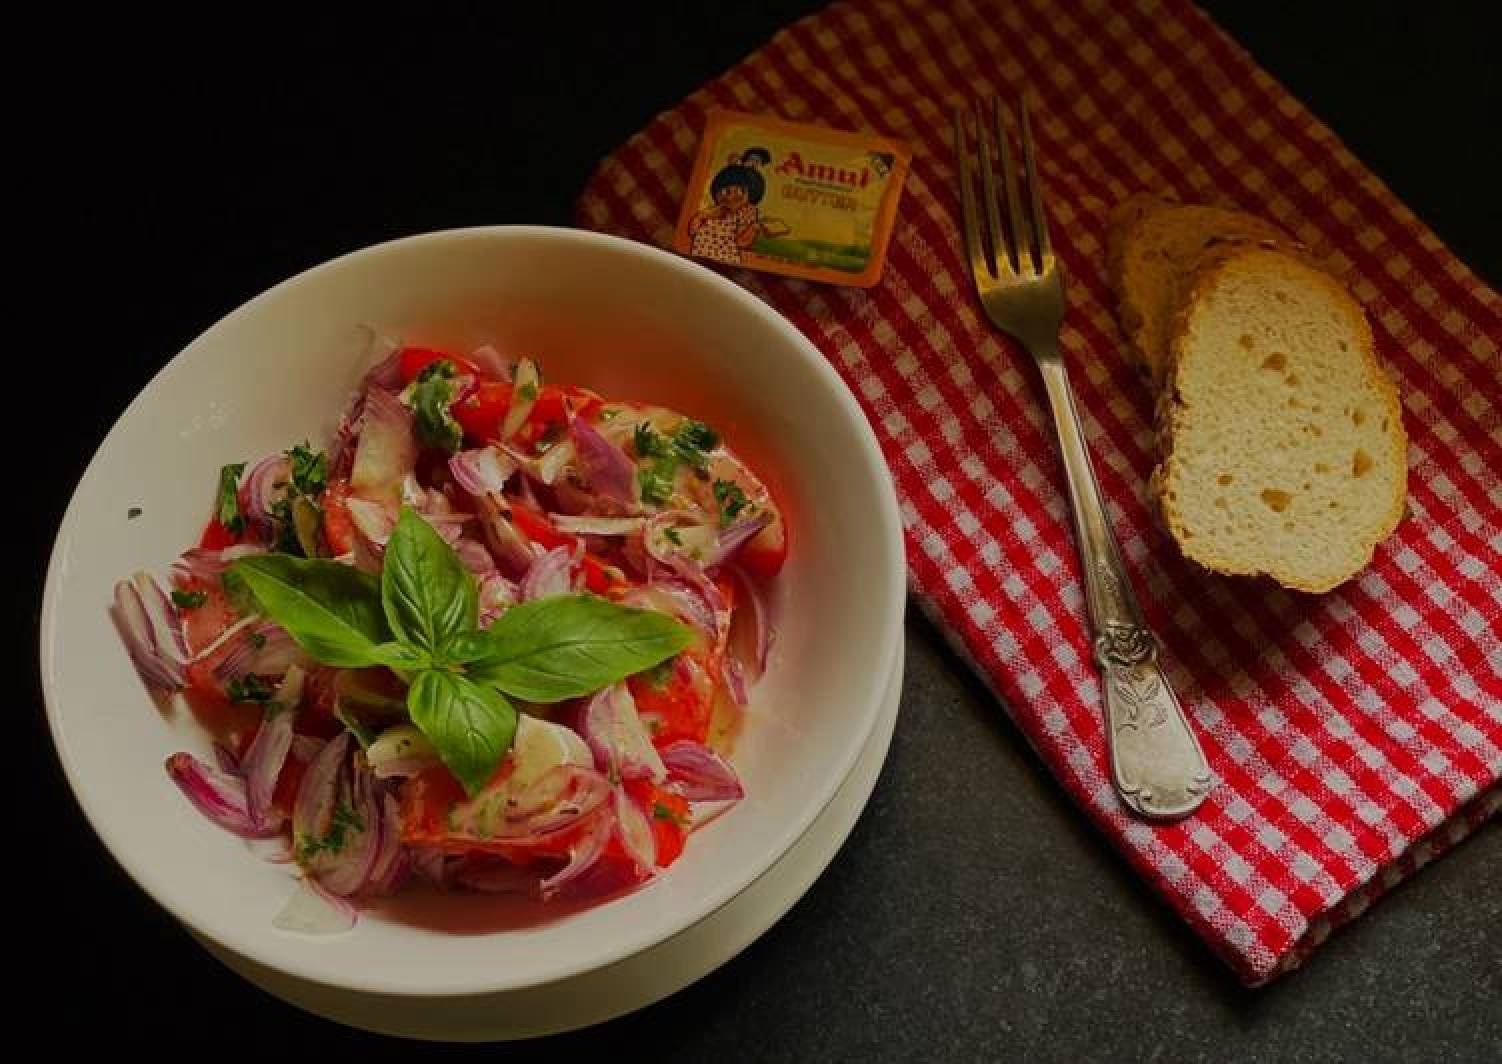 Tomato Salad with Anchovy vinaigrette